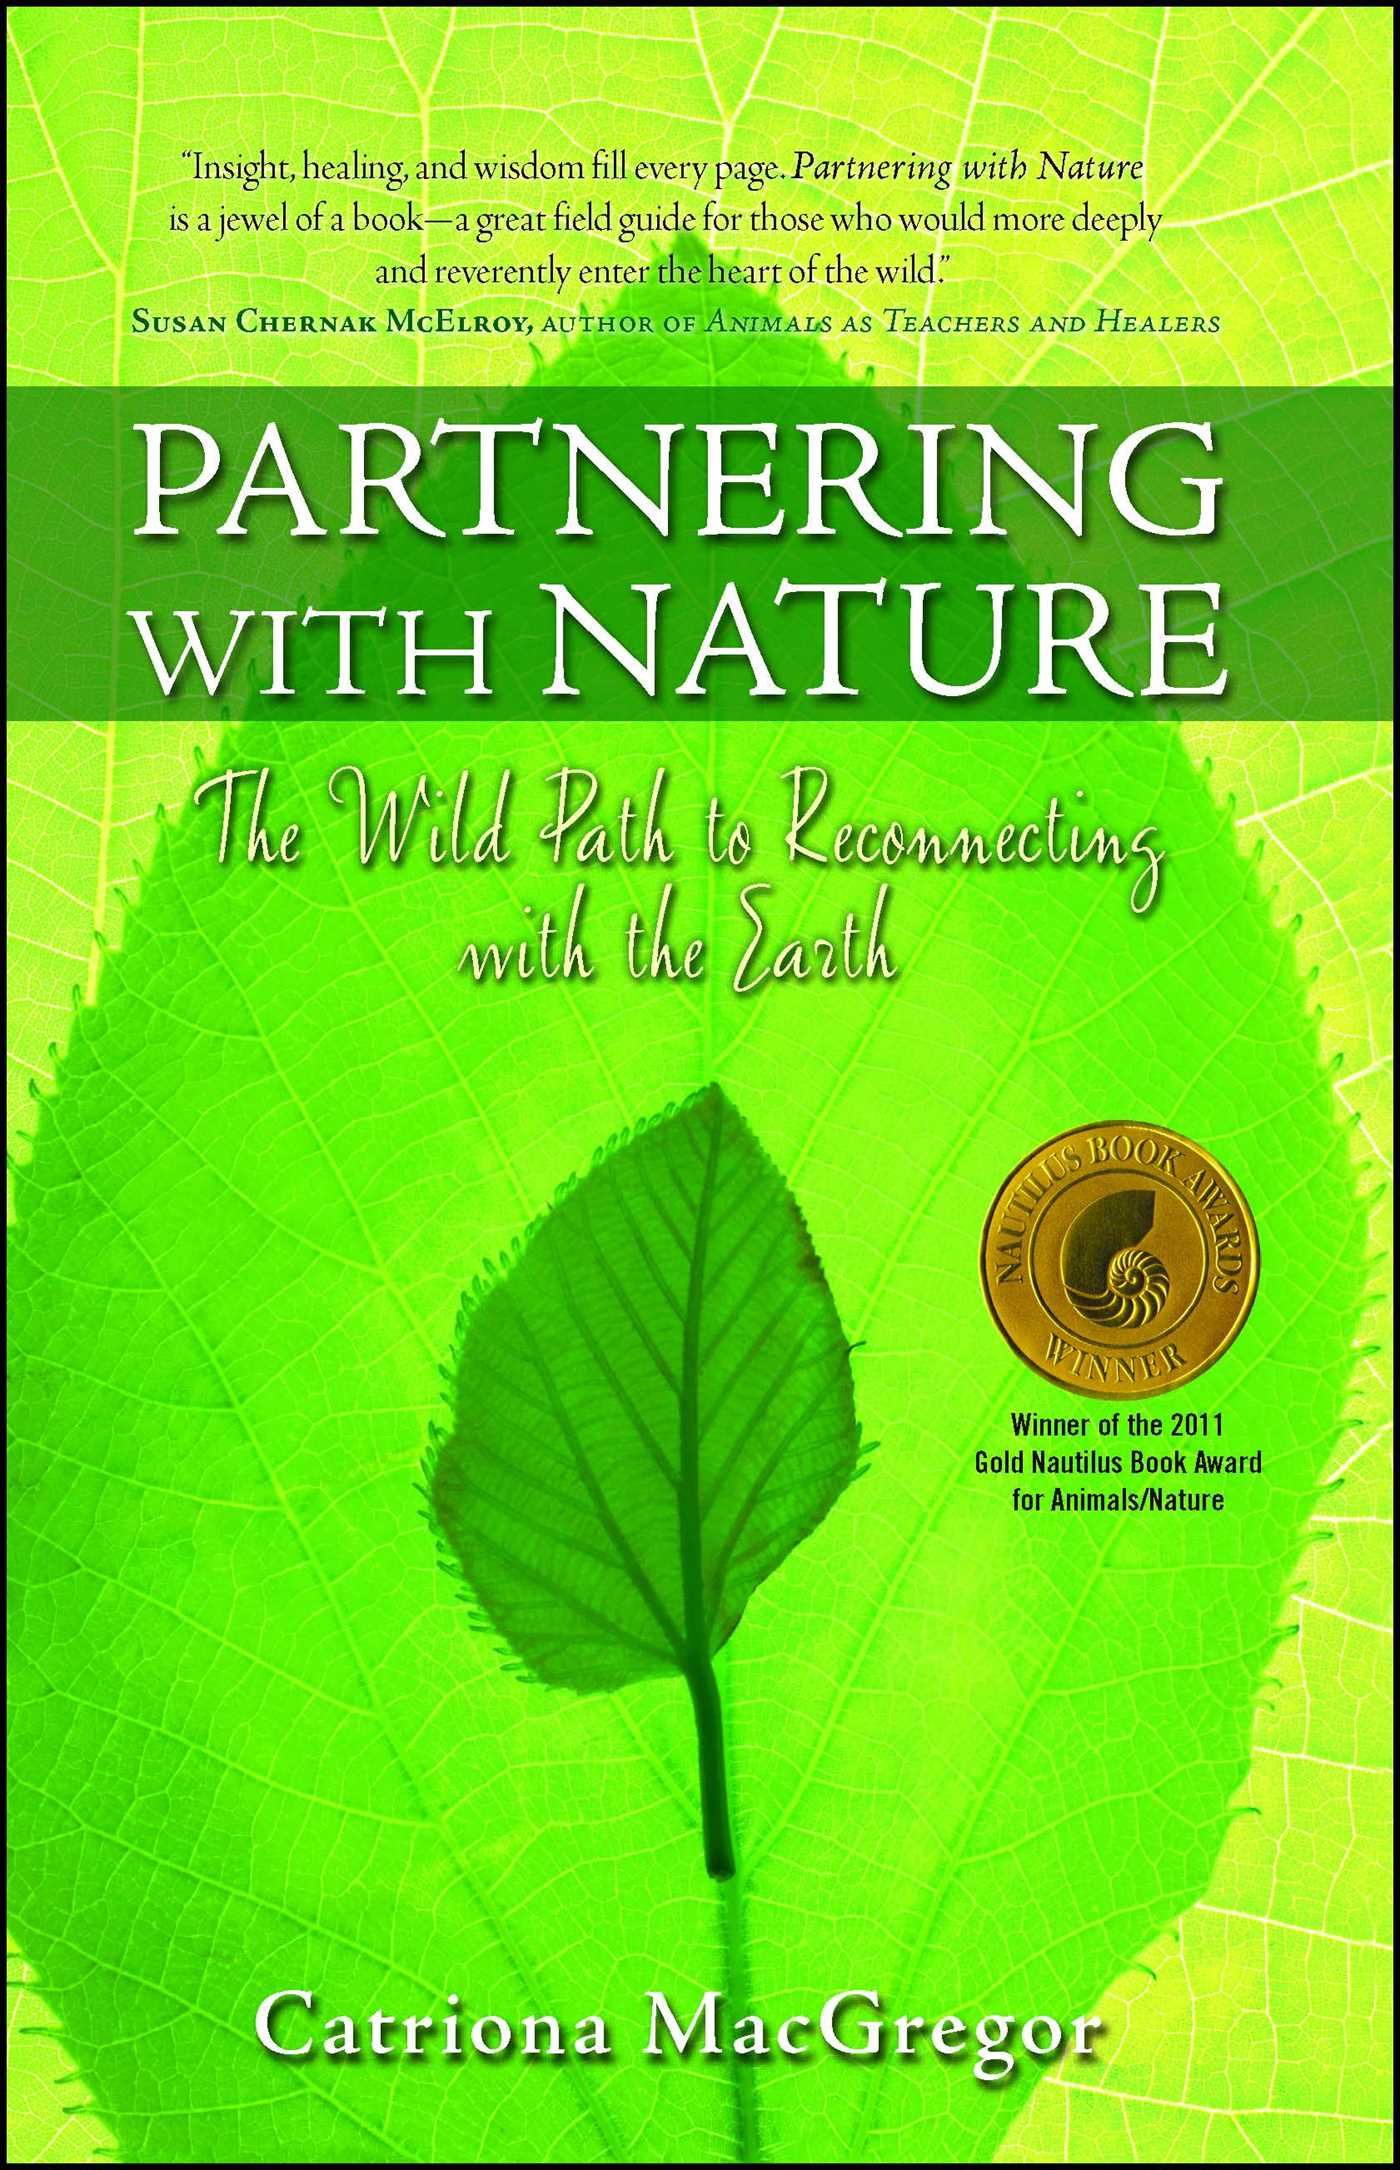 Book Cover Image (jpg): Partnering with Nature